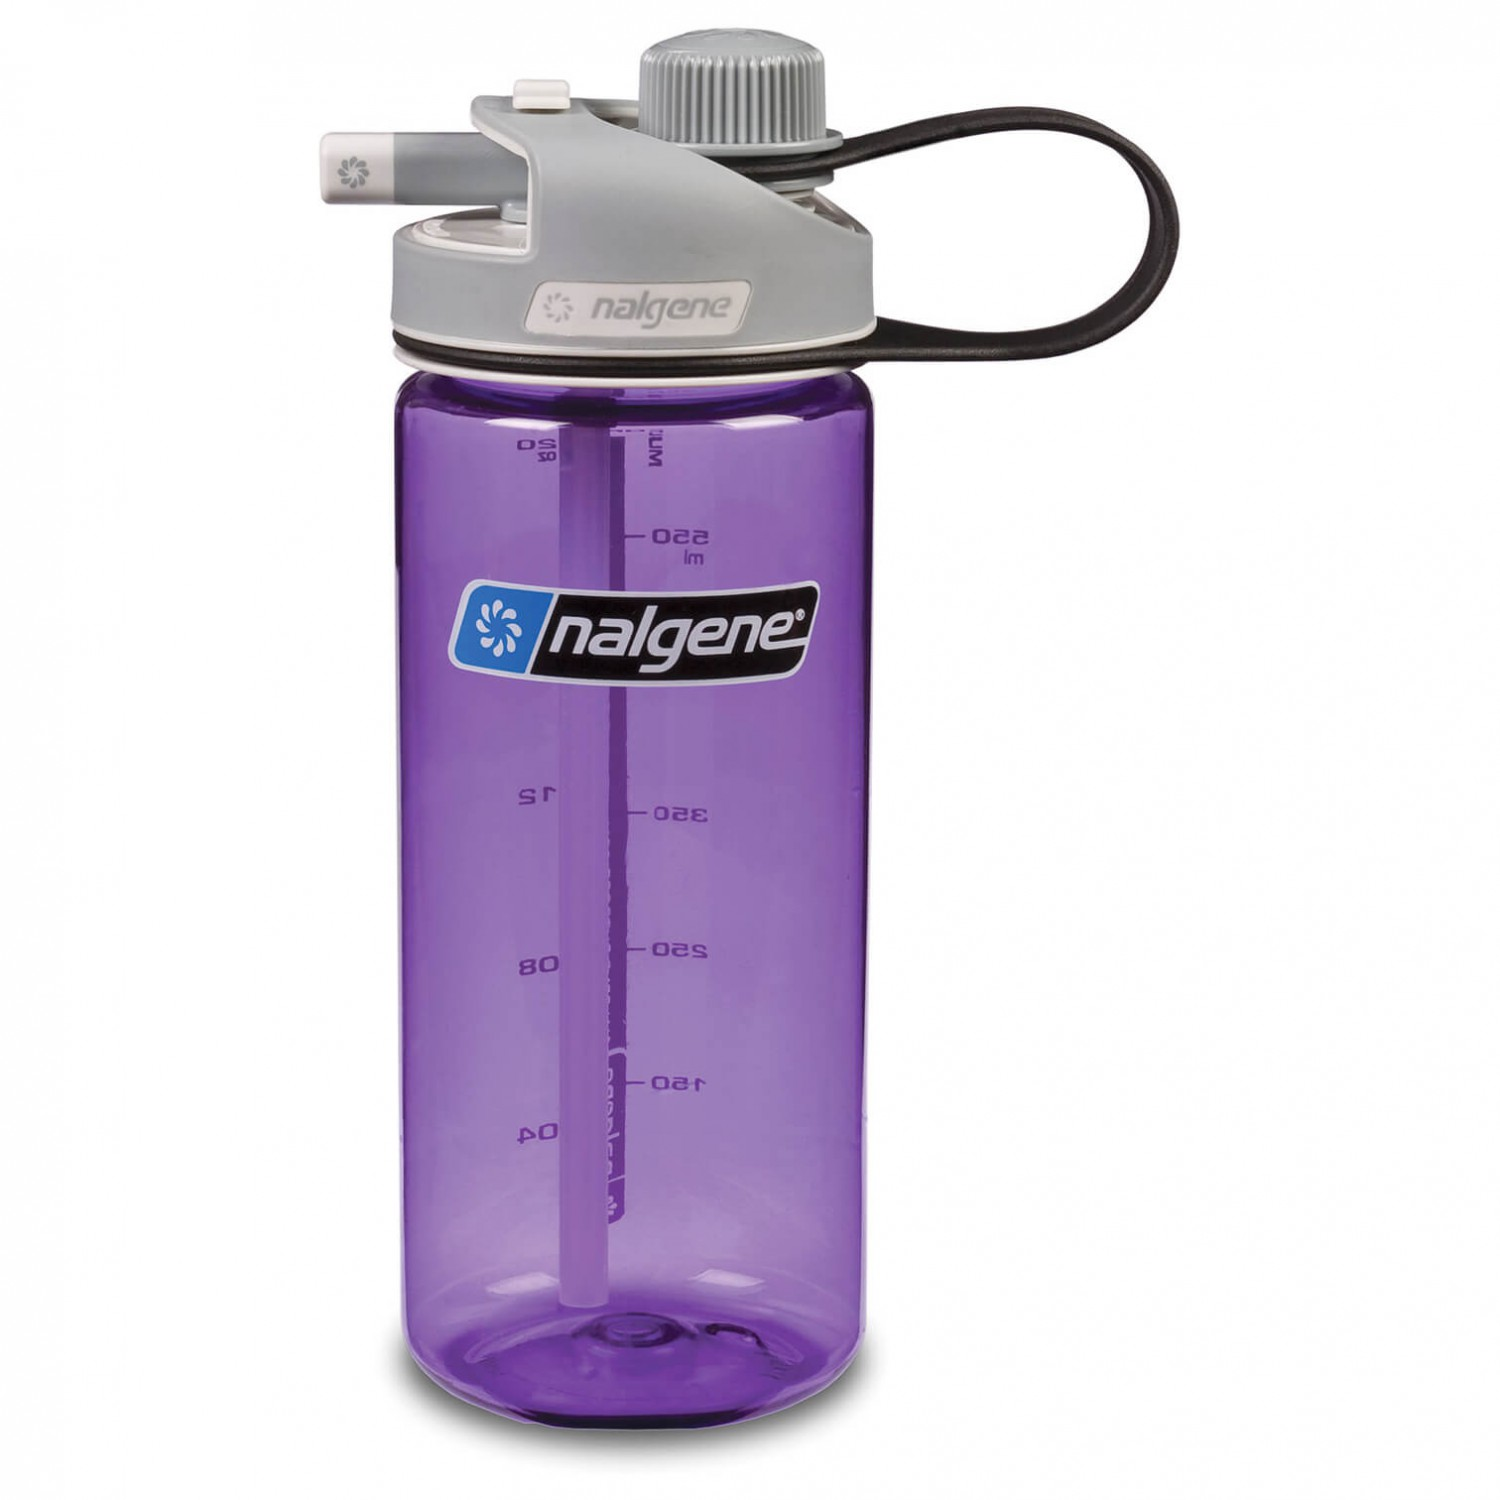 Nalgene Bottle That You Can Drink From